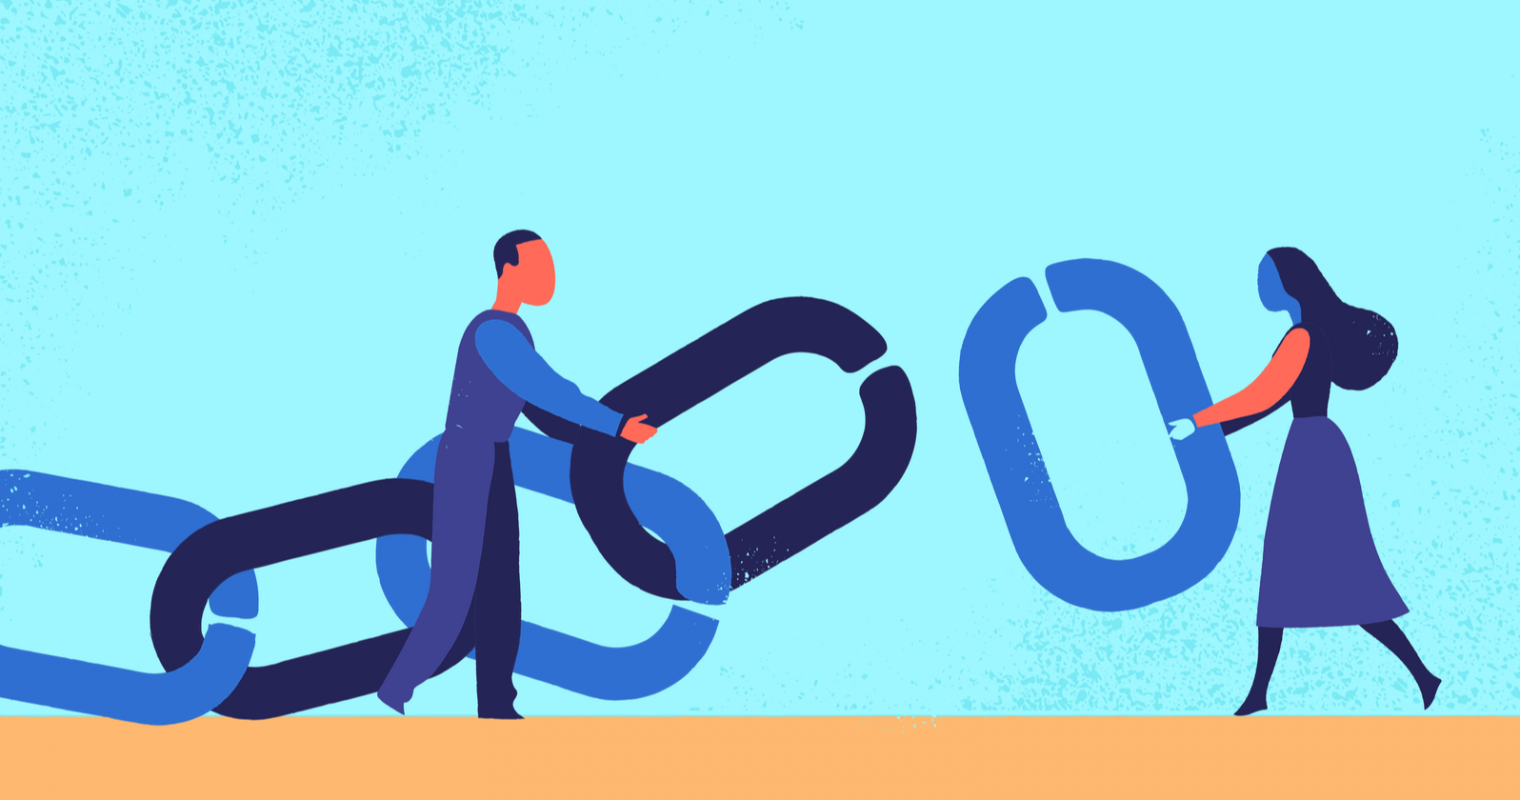 7 Creative Ways to Earn or Build Links to Your Site